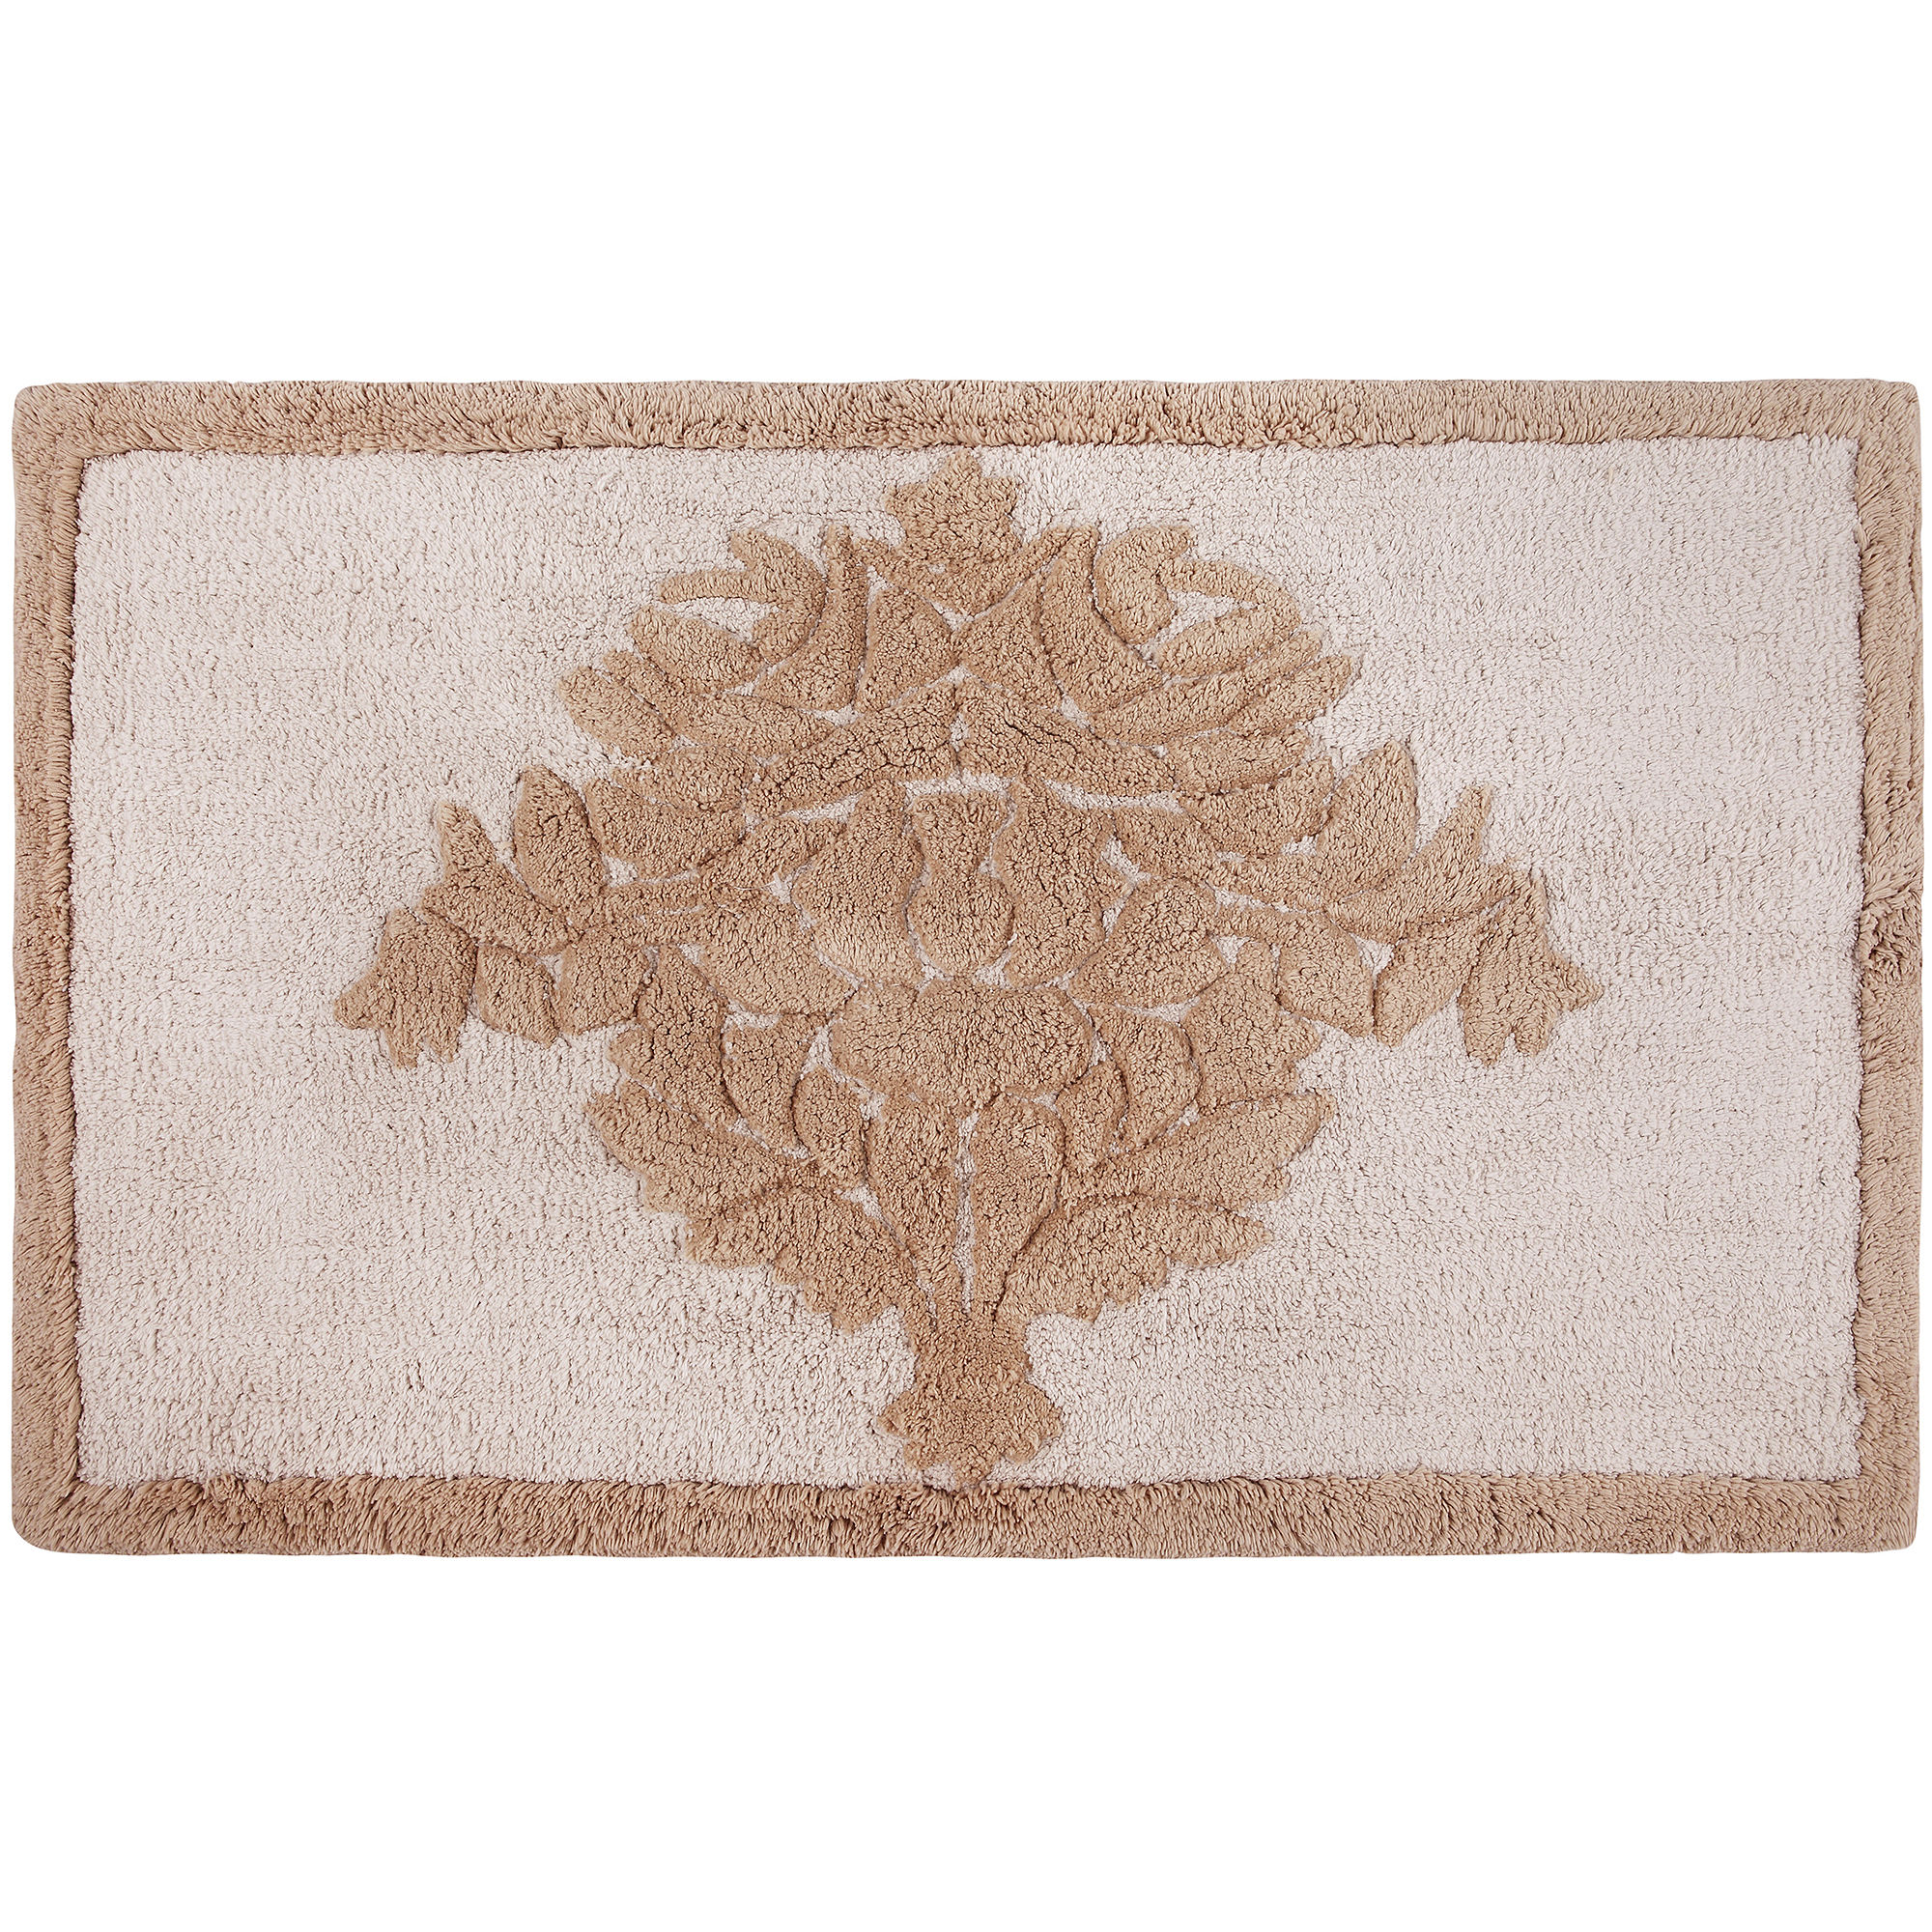 Product Image For Queen Street Bianca Damask Bath Rug